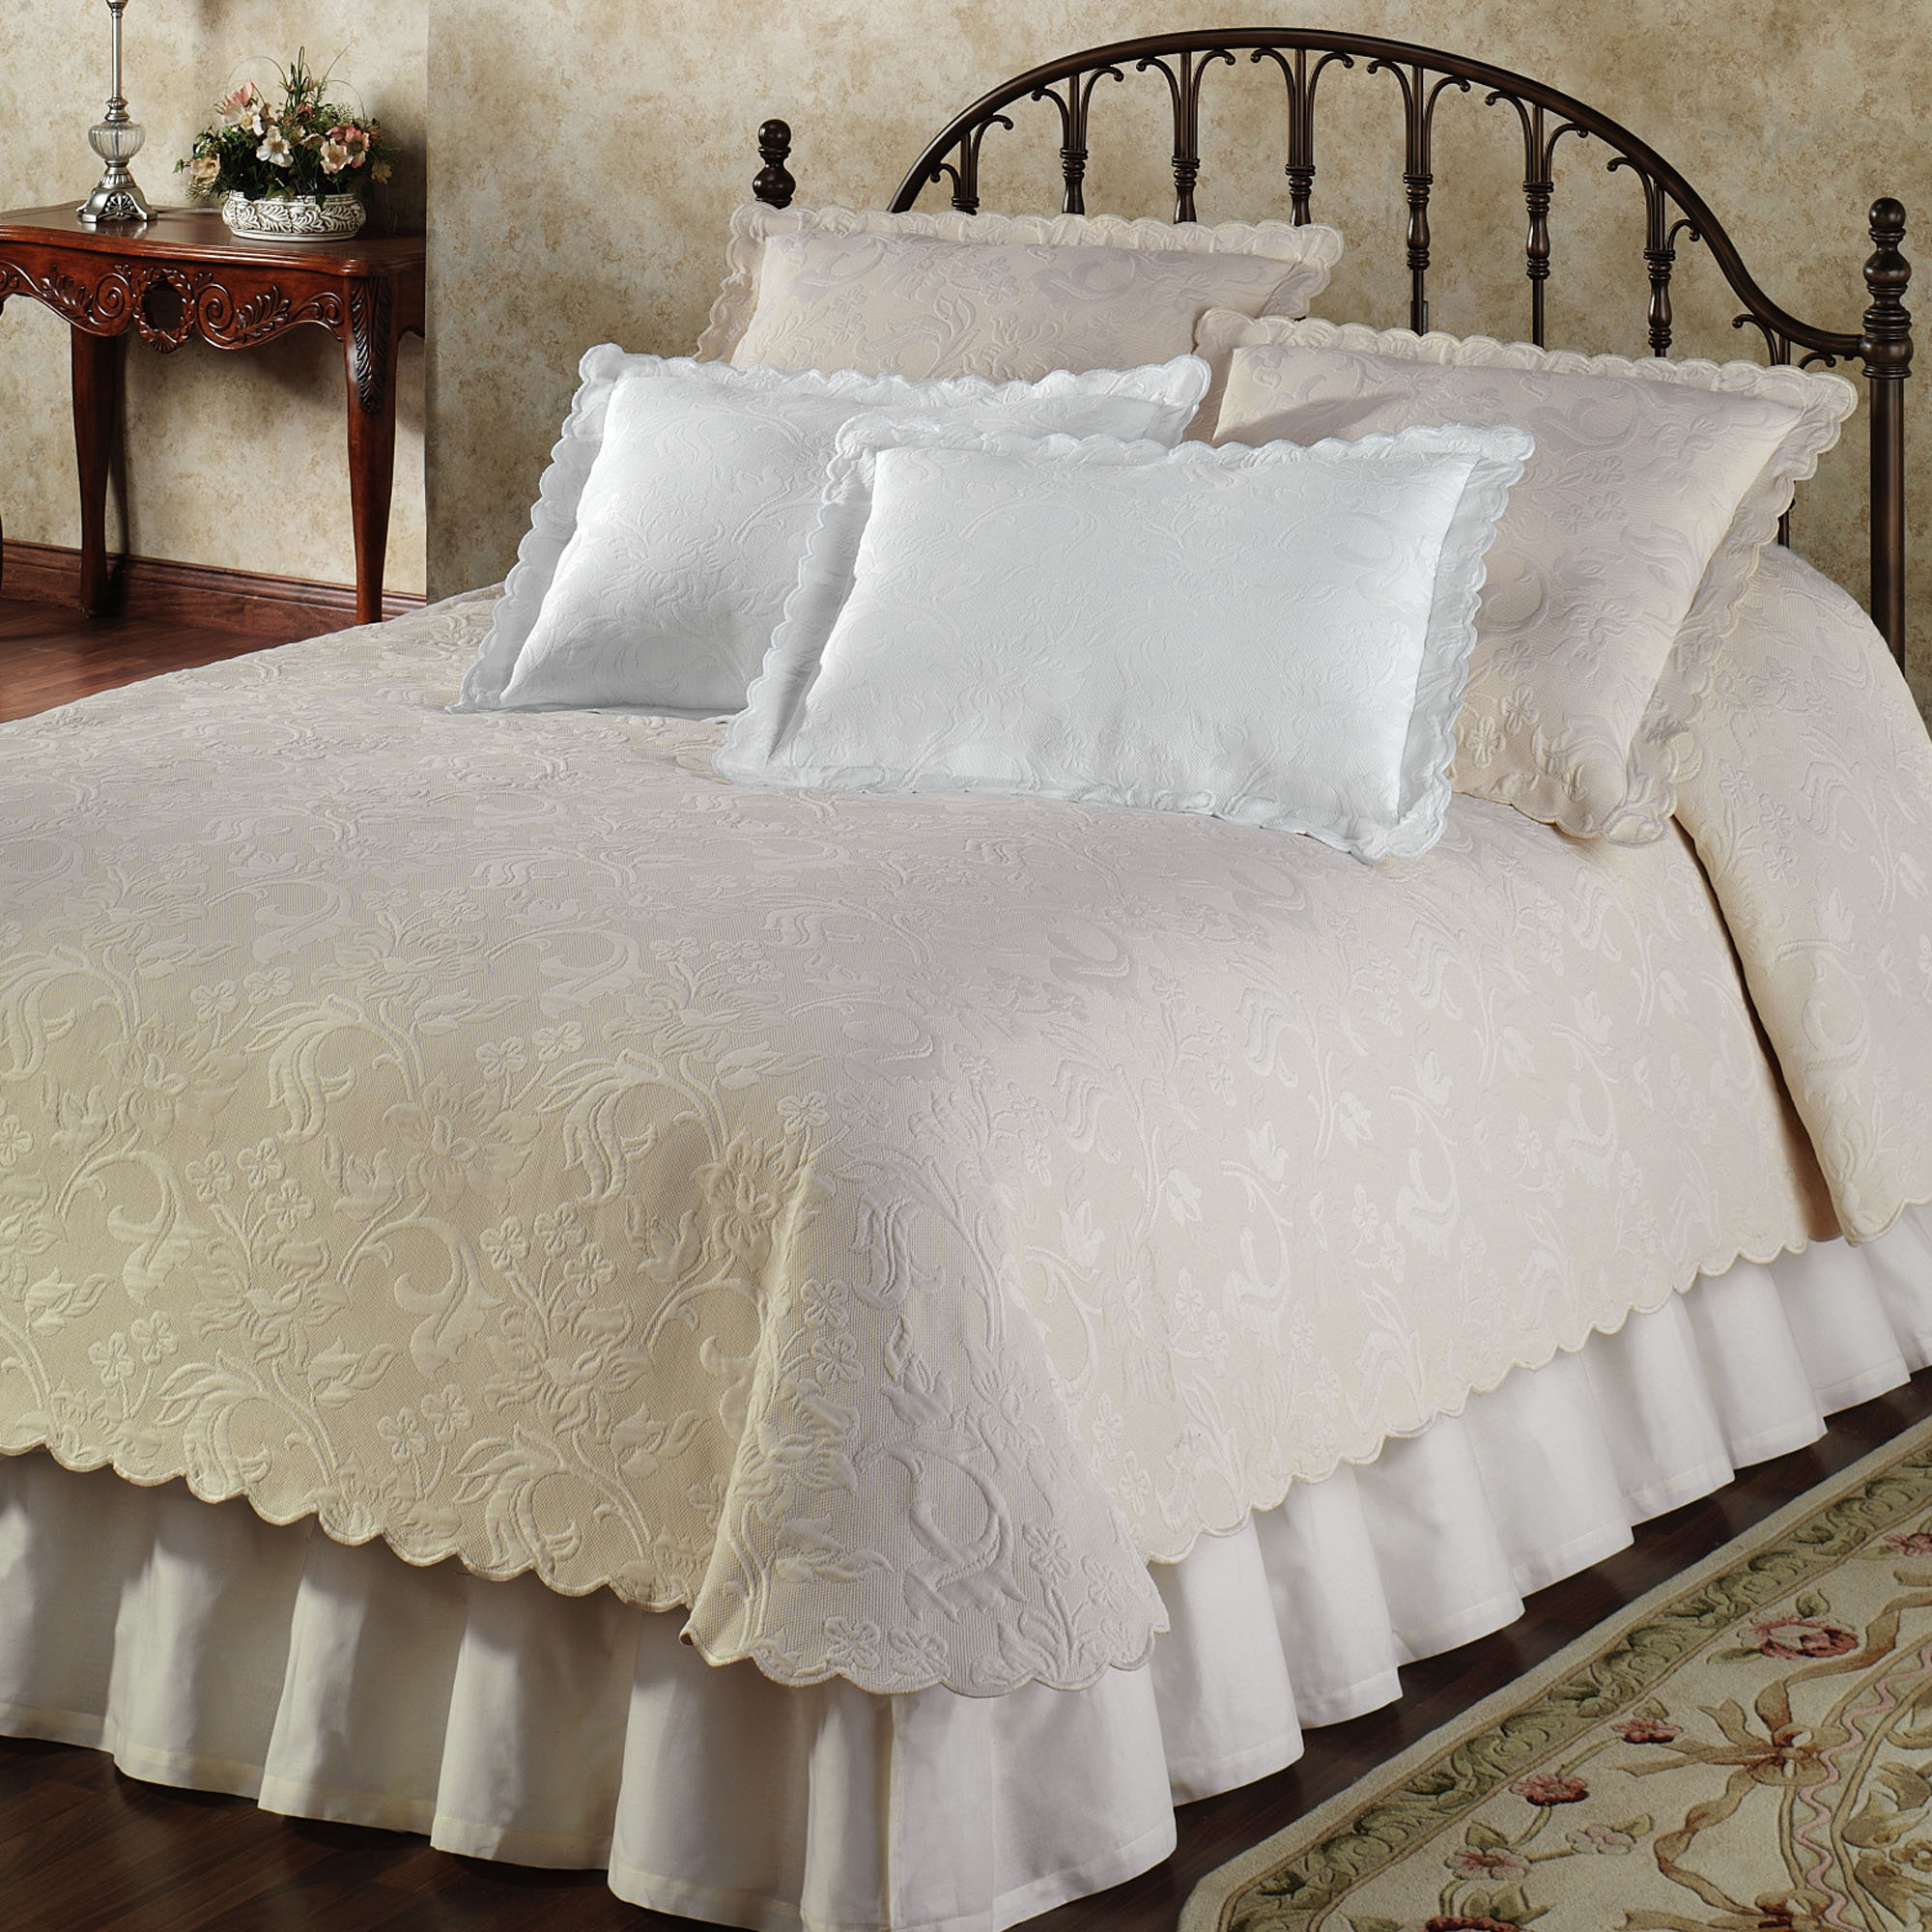 Mesmerizing matelasse for bedding ideas with matelasse bedding